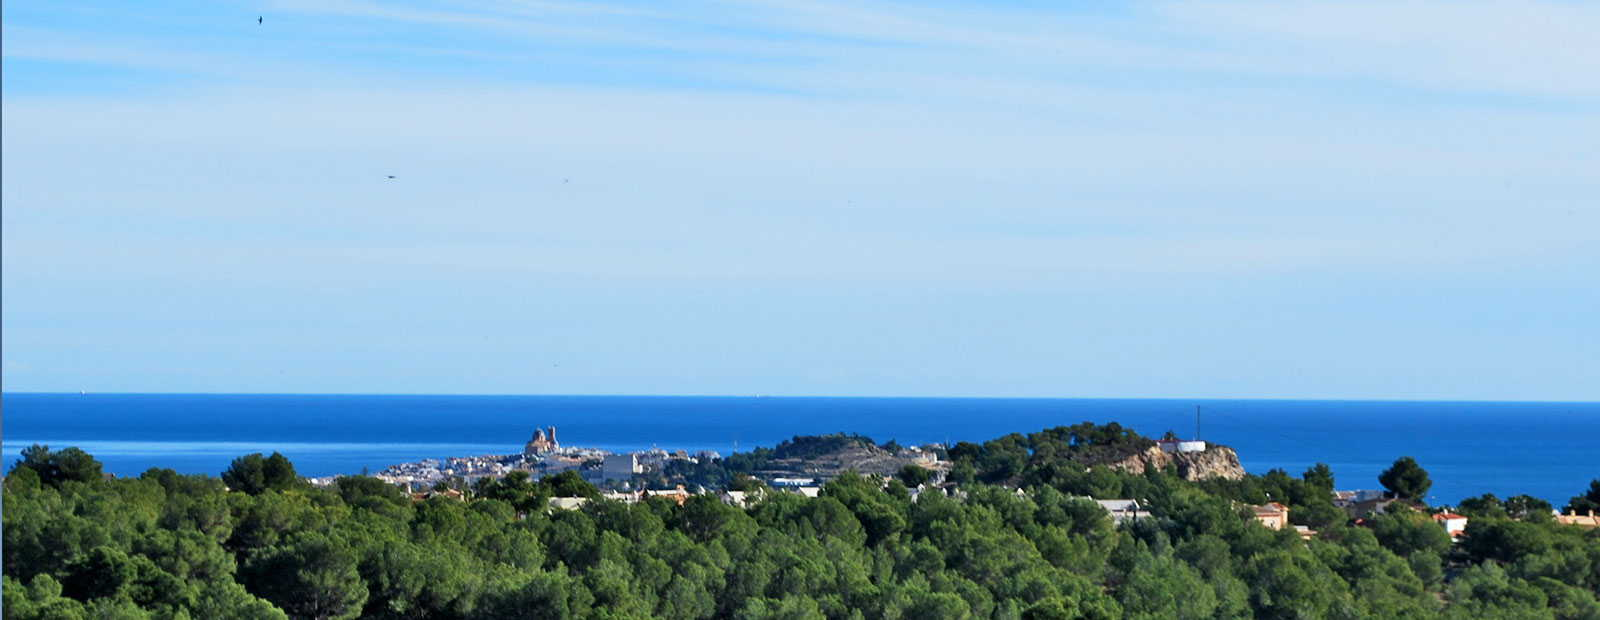 Exclusive holiday villas at the Costa Blanca